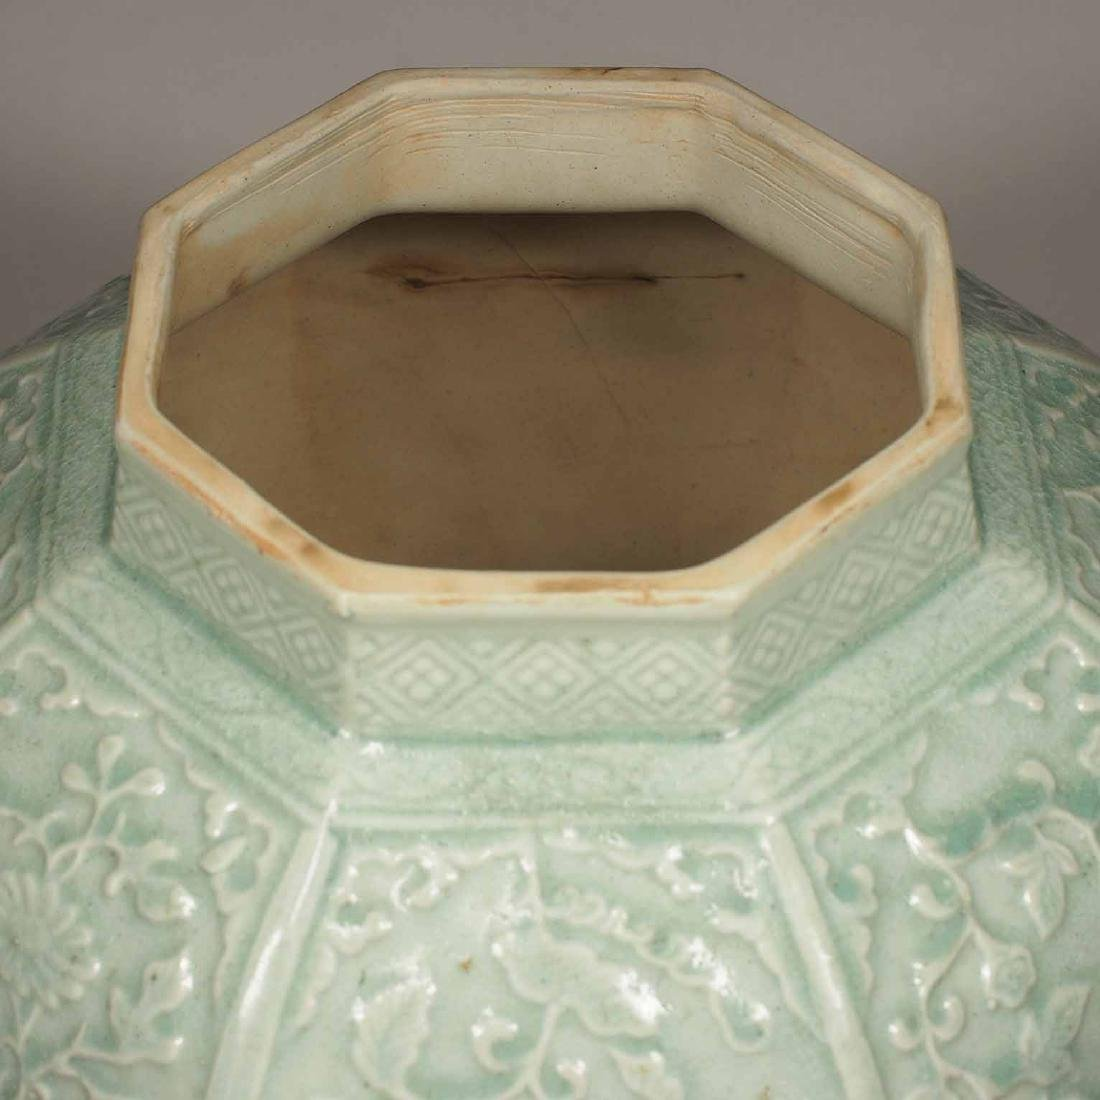 (TL) Octagonal Lidded Jar, late Yuan-early Ming Dynasty - 9